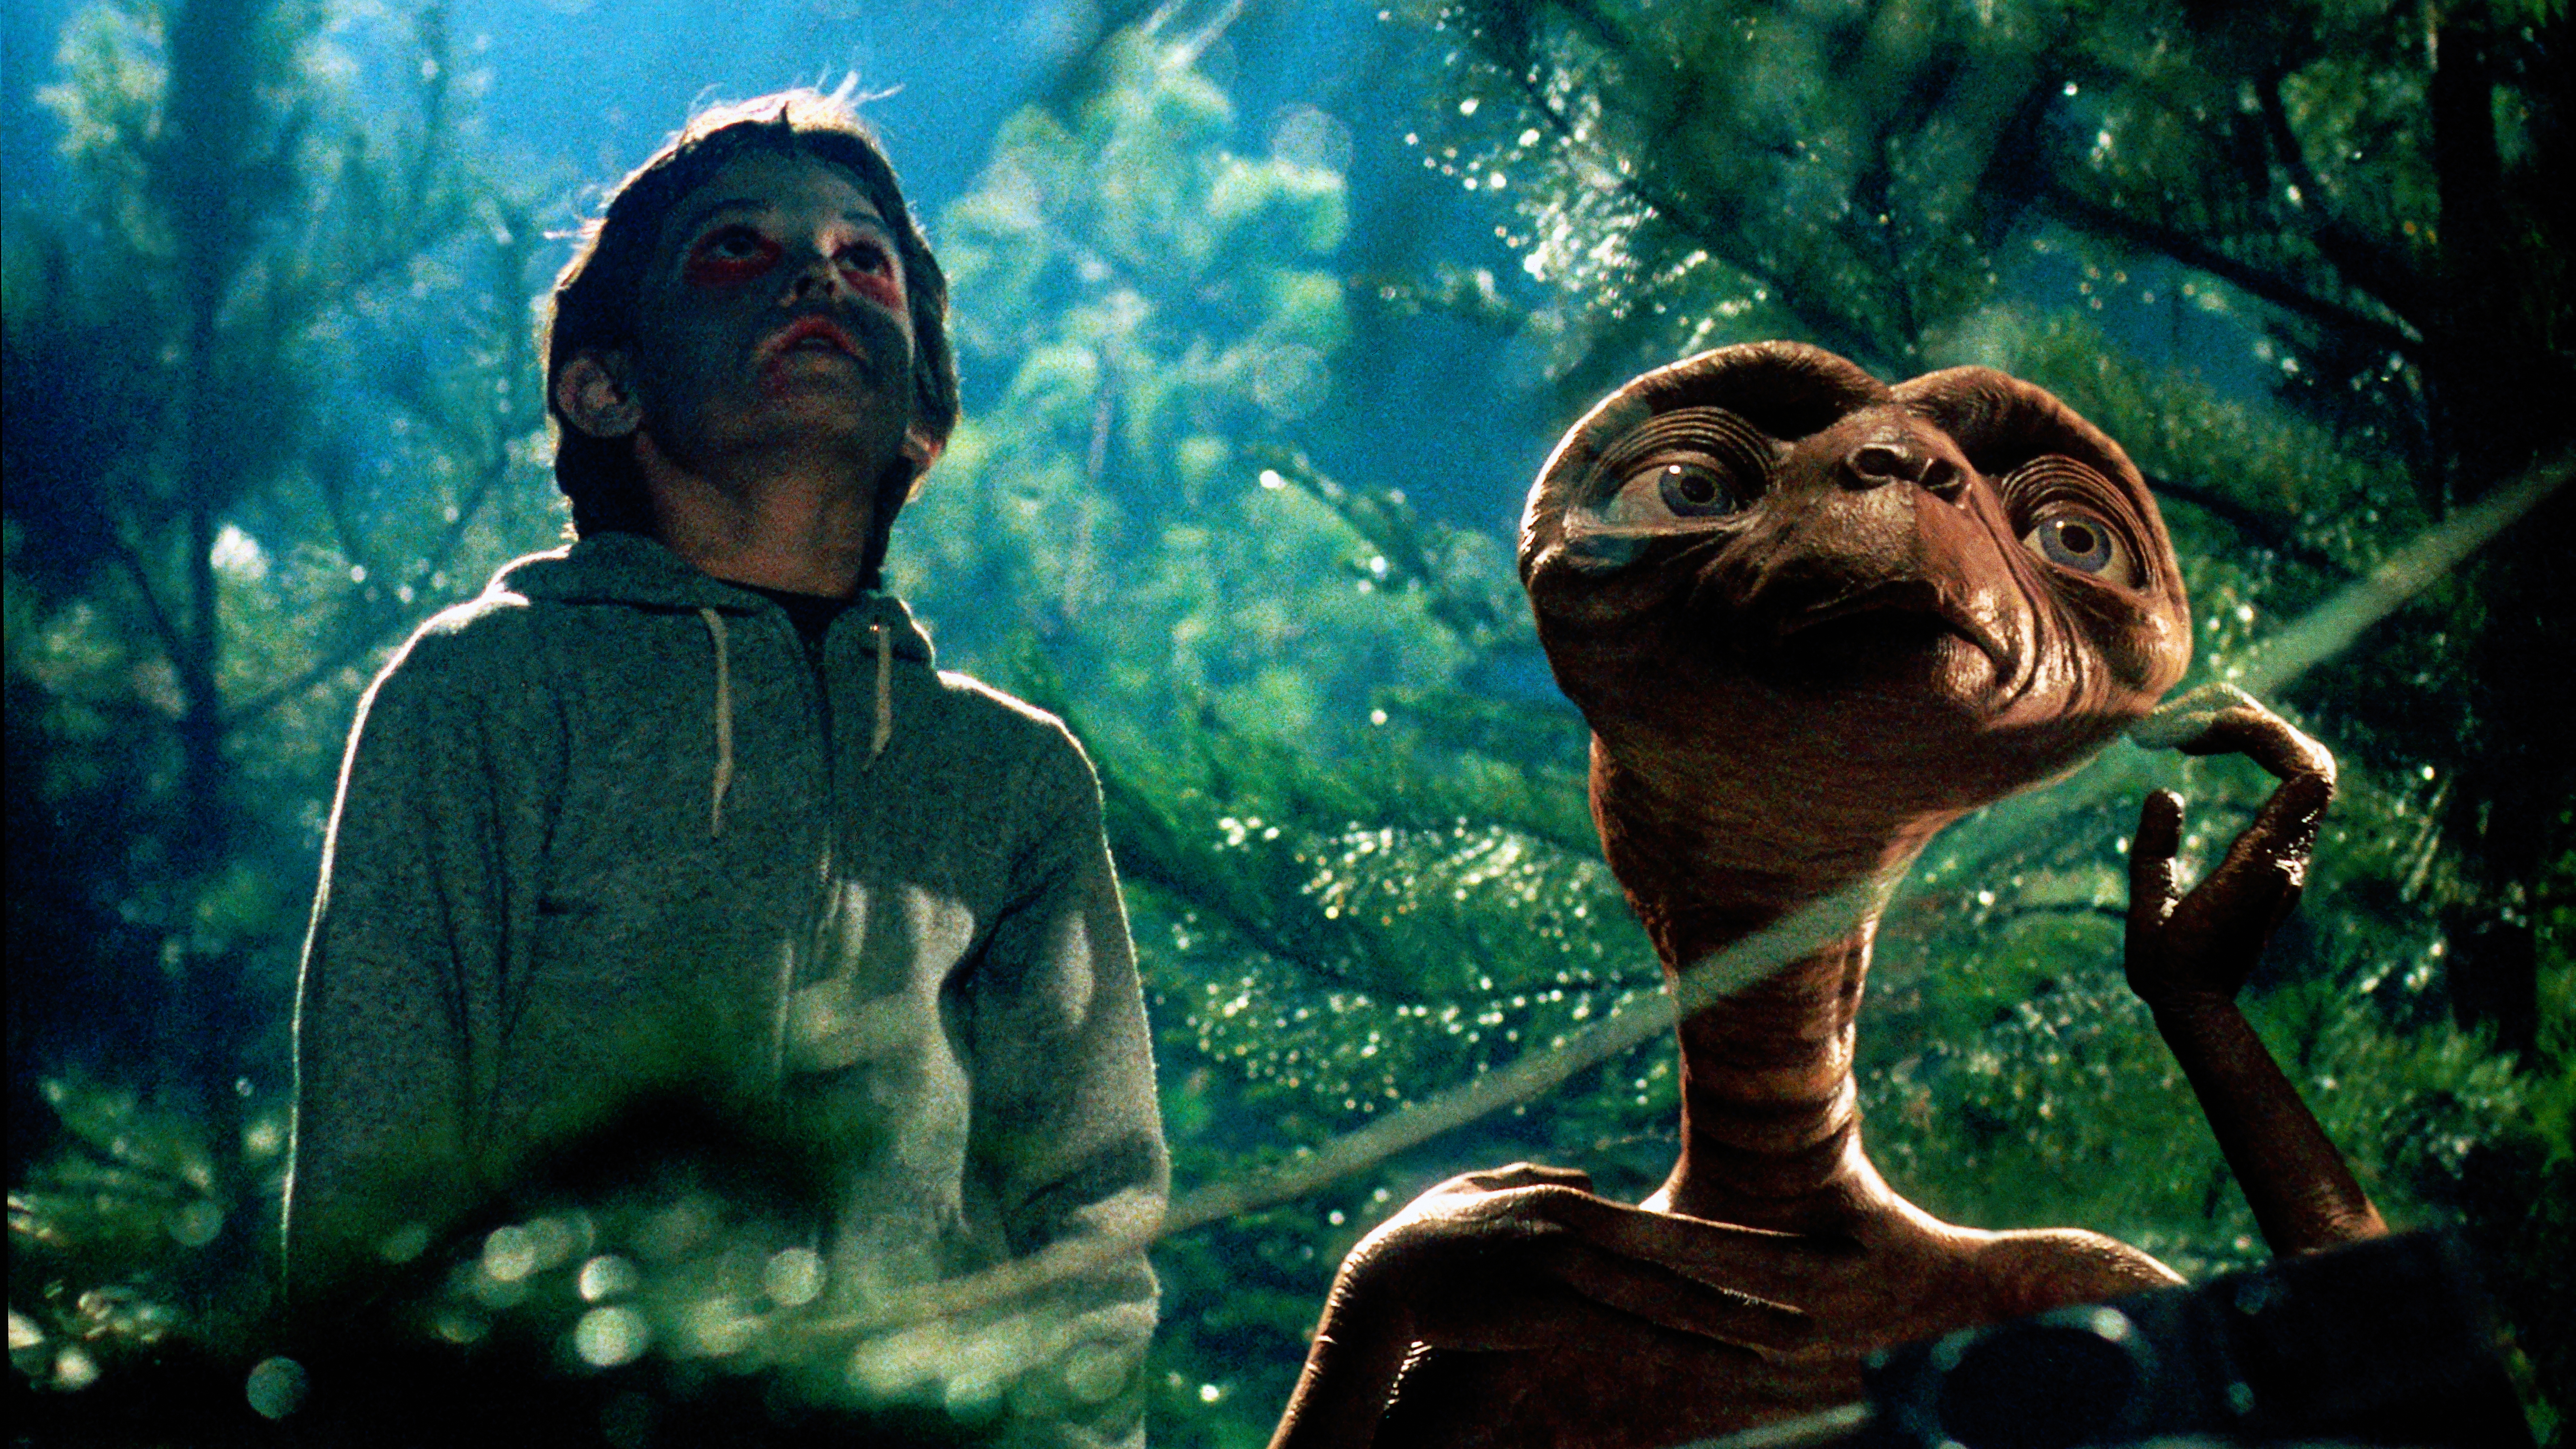 Steven Spielberg's 'E.T.' will kick off Dipson's Classic Family Film series on Feb 20 in the Eastern Hills Cinema.